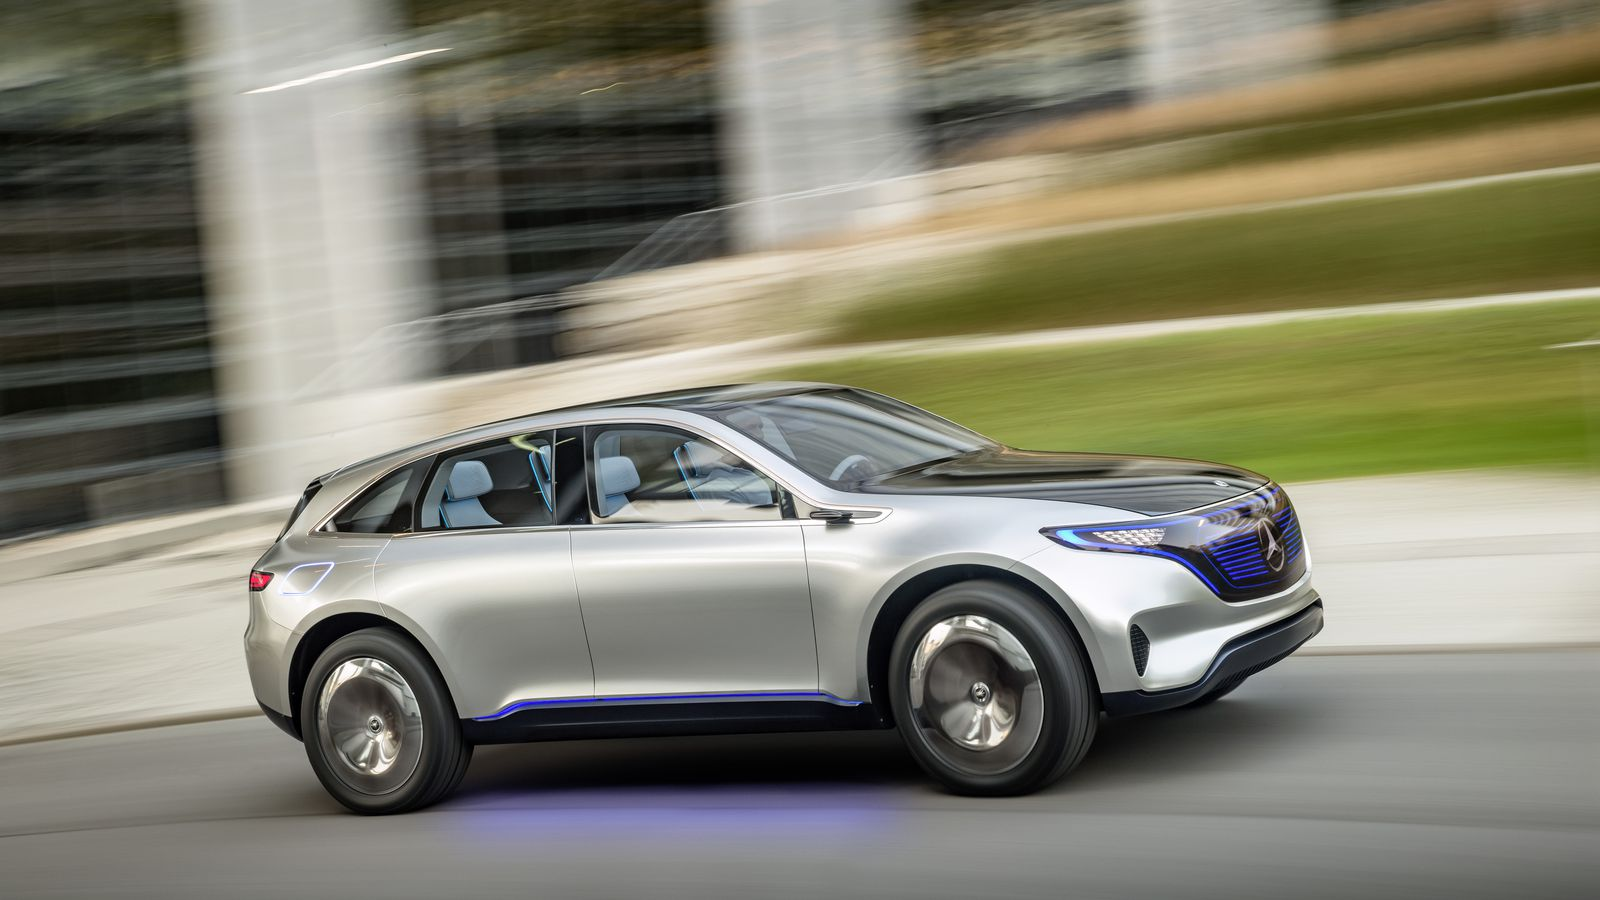 new car releases and previewsMercedes launches EQ brand with electric SUV concept  The Verge